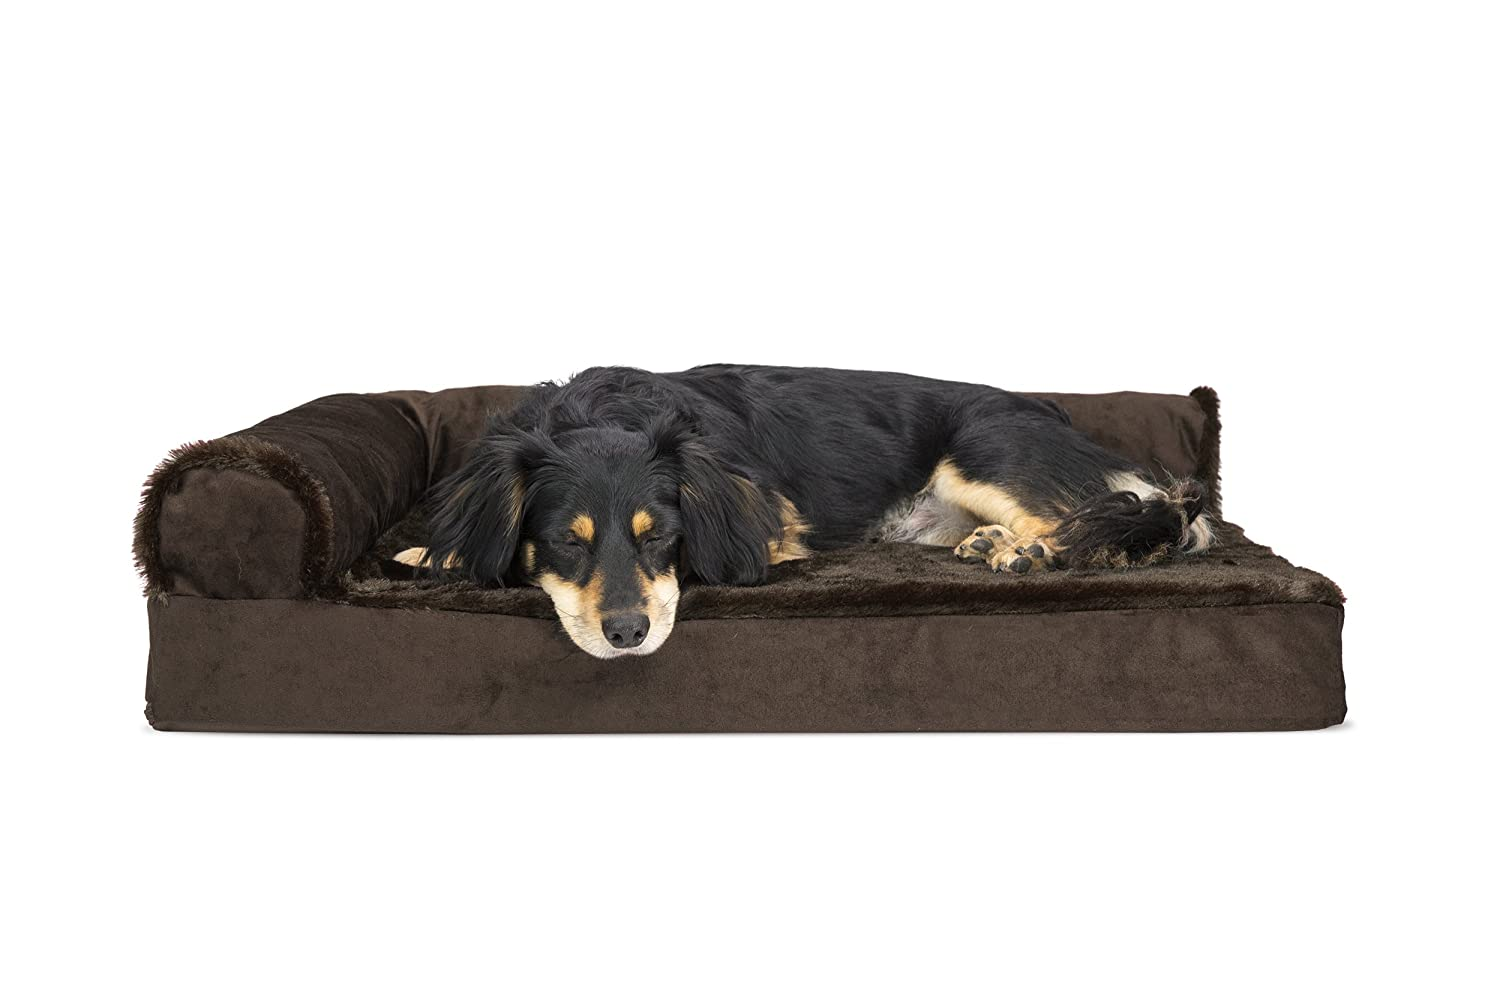 Two Sided Sable Brown Medium Two Sided Sable Brown Medium FurHaven Deluxe Orthopedic Chaise Couch Pet Bed for Cats and Dogs, Medium, Two-Sided Sable Brown